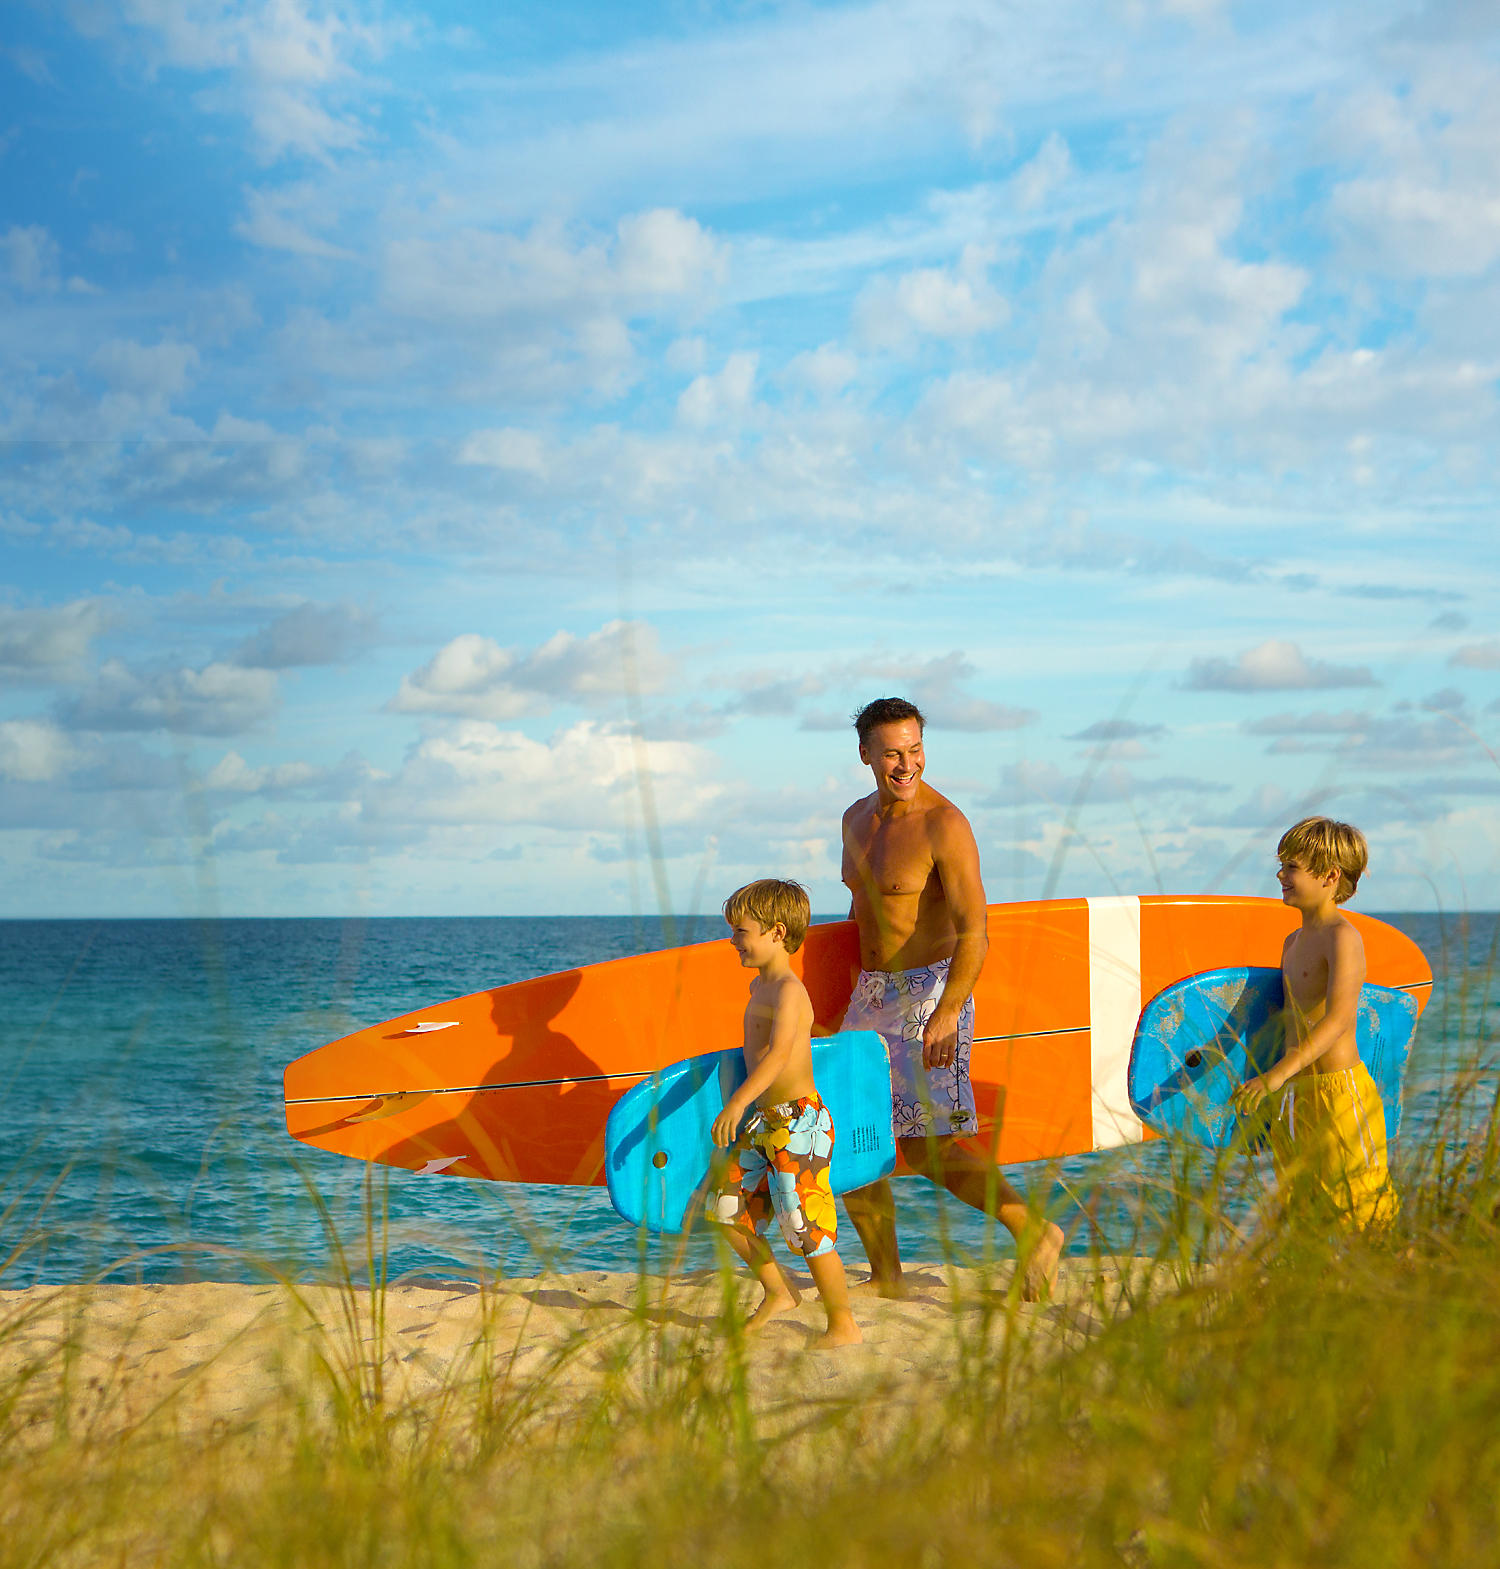 Father and his children holding surf boards heading towards the ocean.